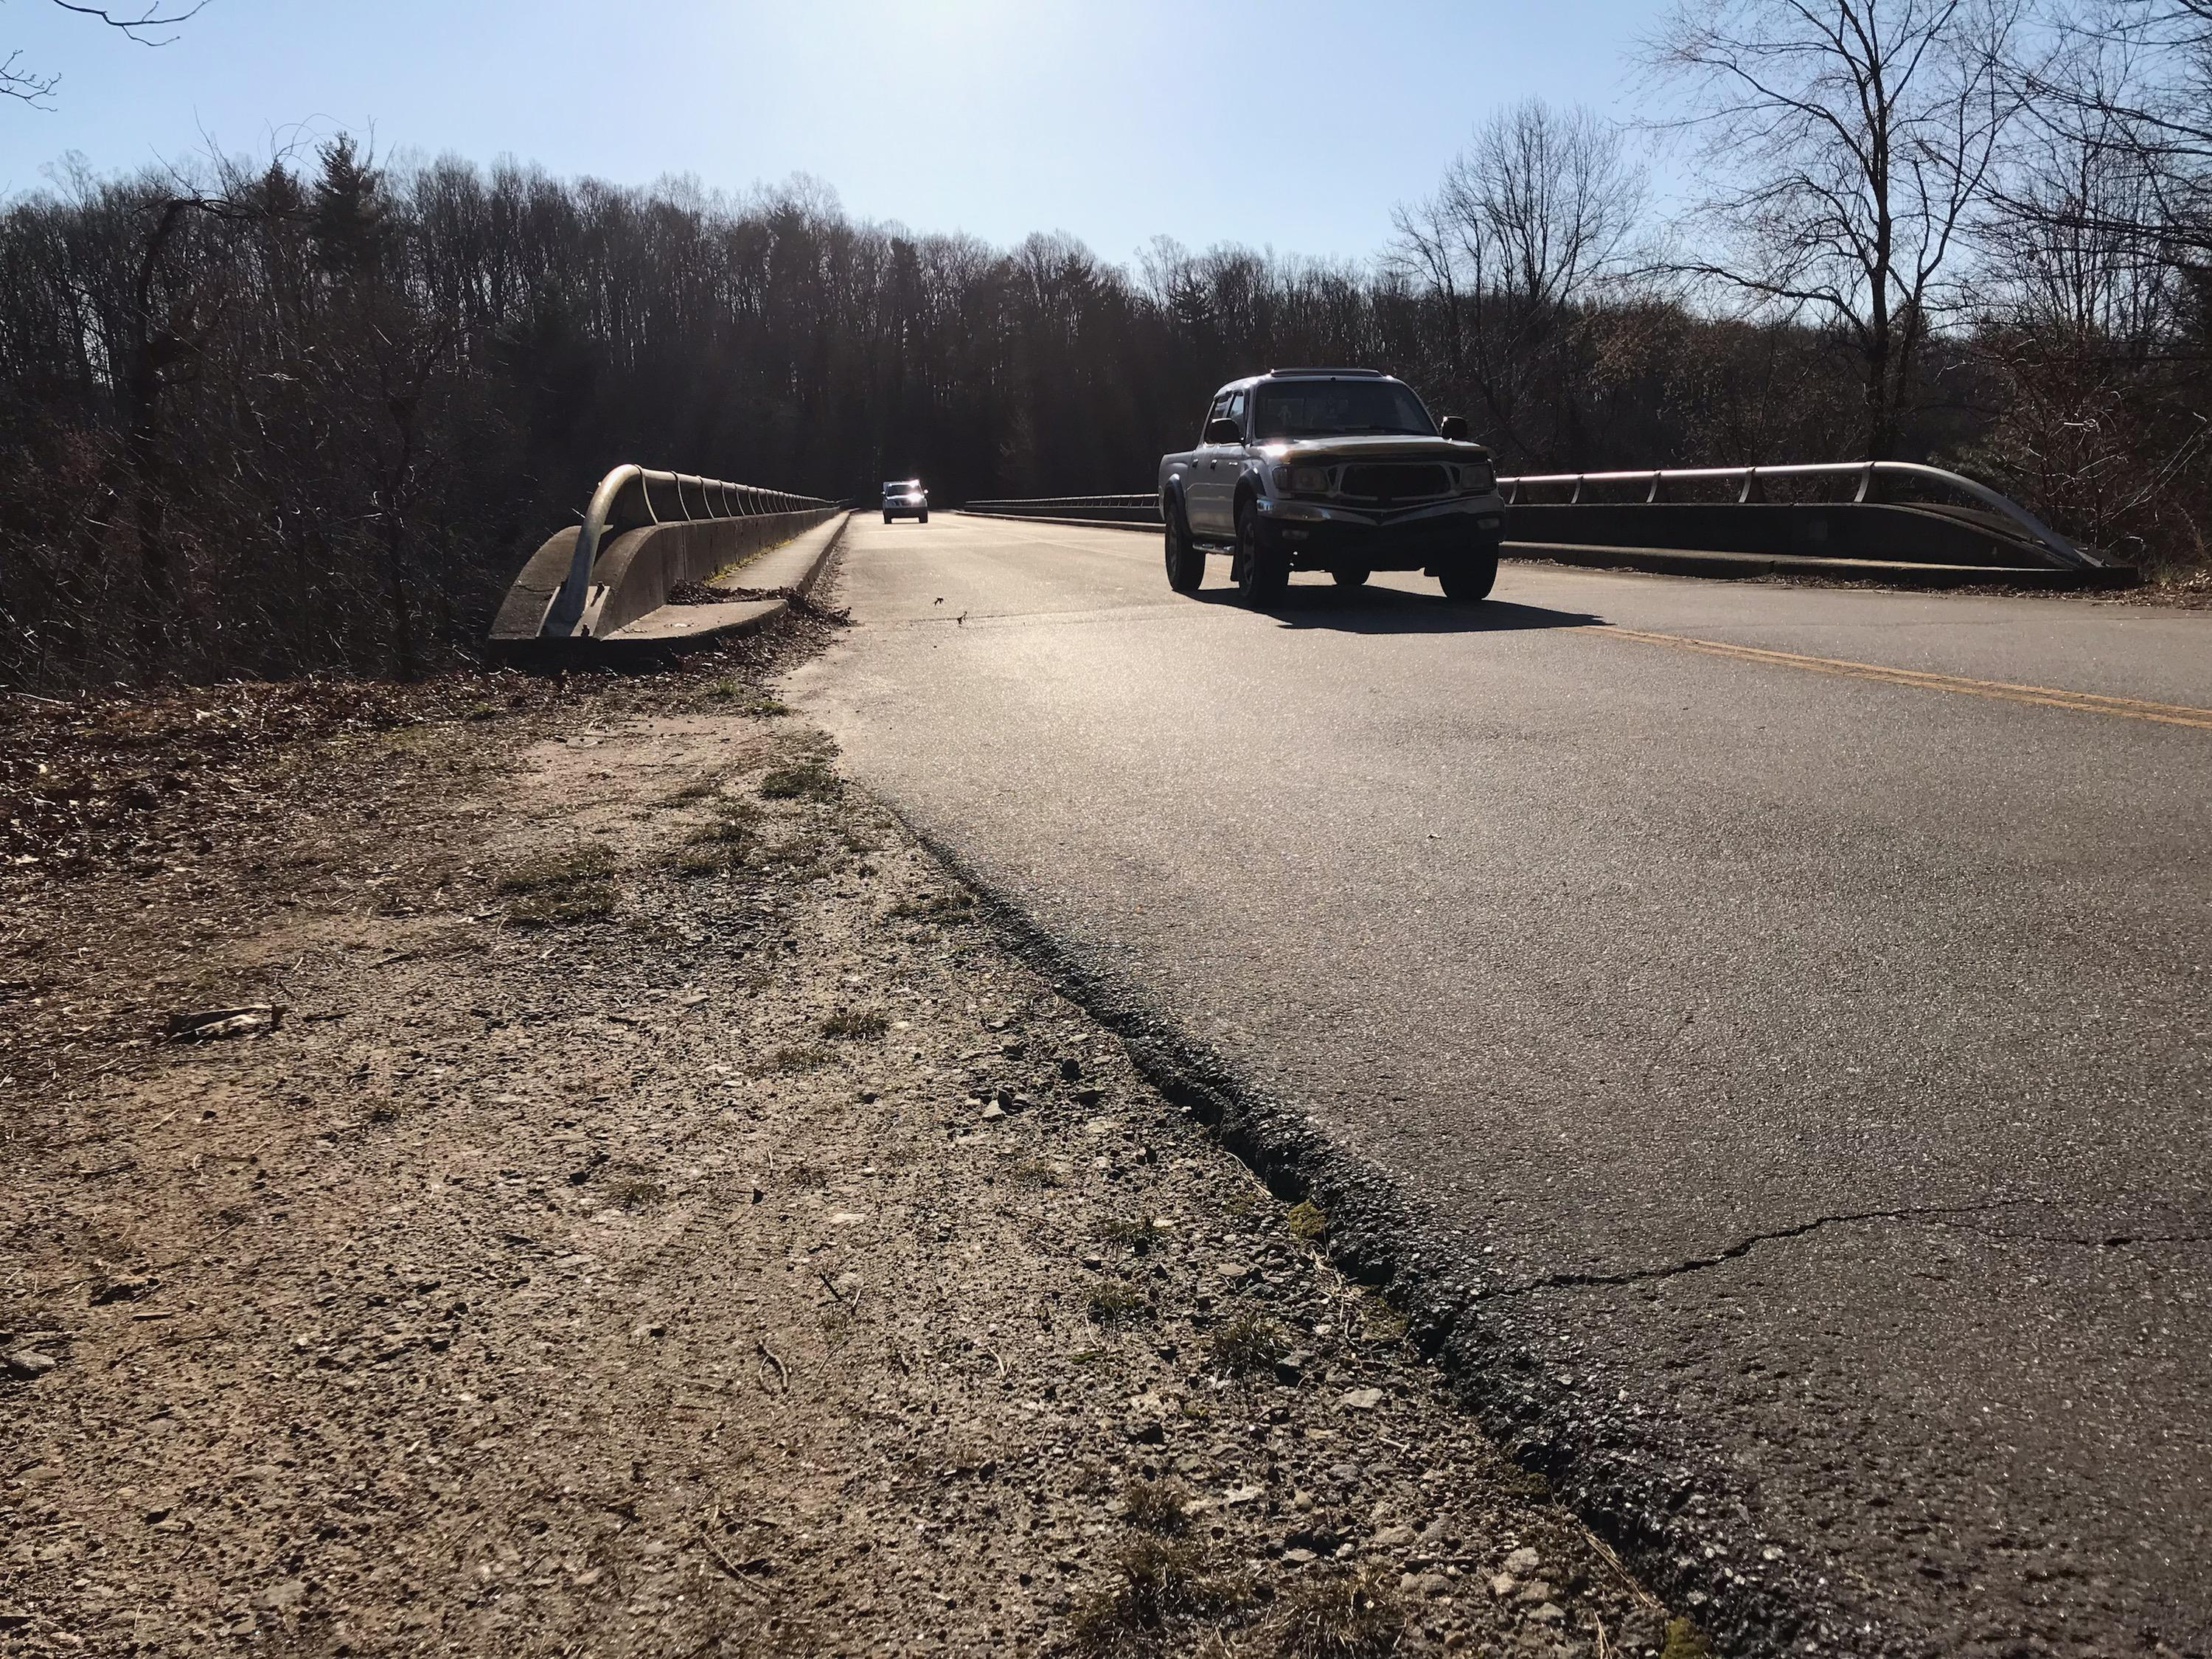 The Blue Ridge Parkway bridge that goes over Interstate 26 will be replaced as part of the I-26 widening project. (Photo credit: WLOS staff)